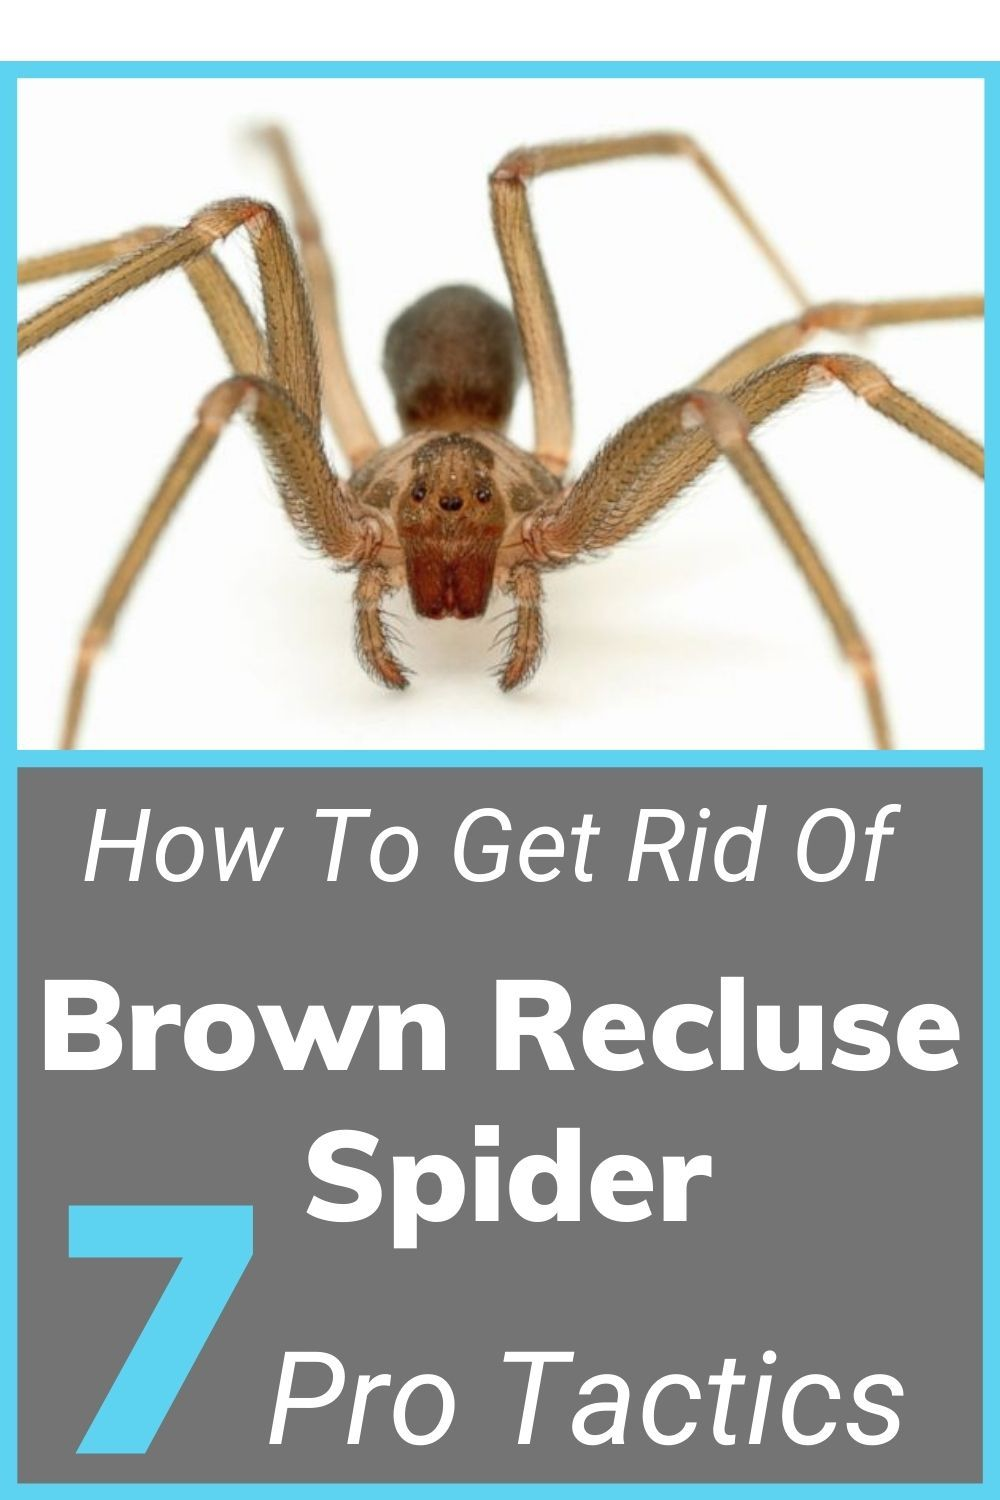 7 Pro Tactics How To Get Rid Of Brown Recluse Spiders